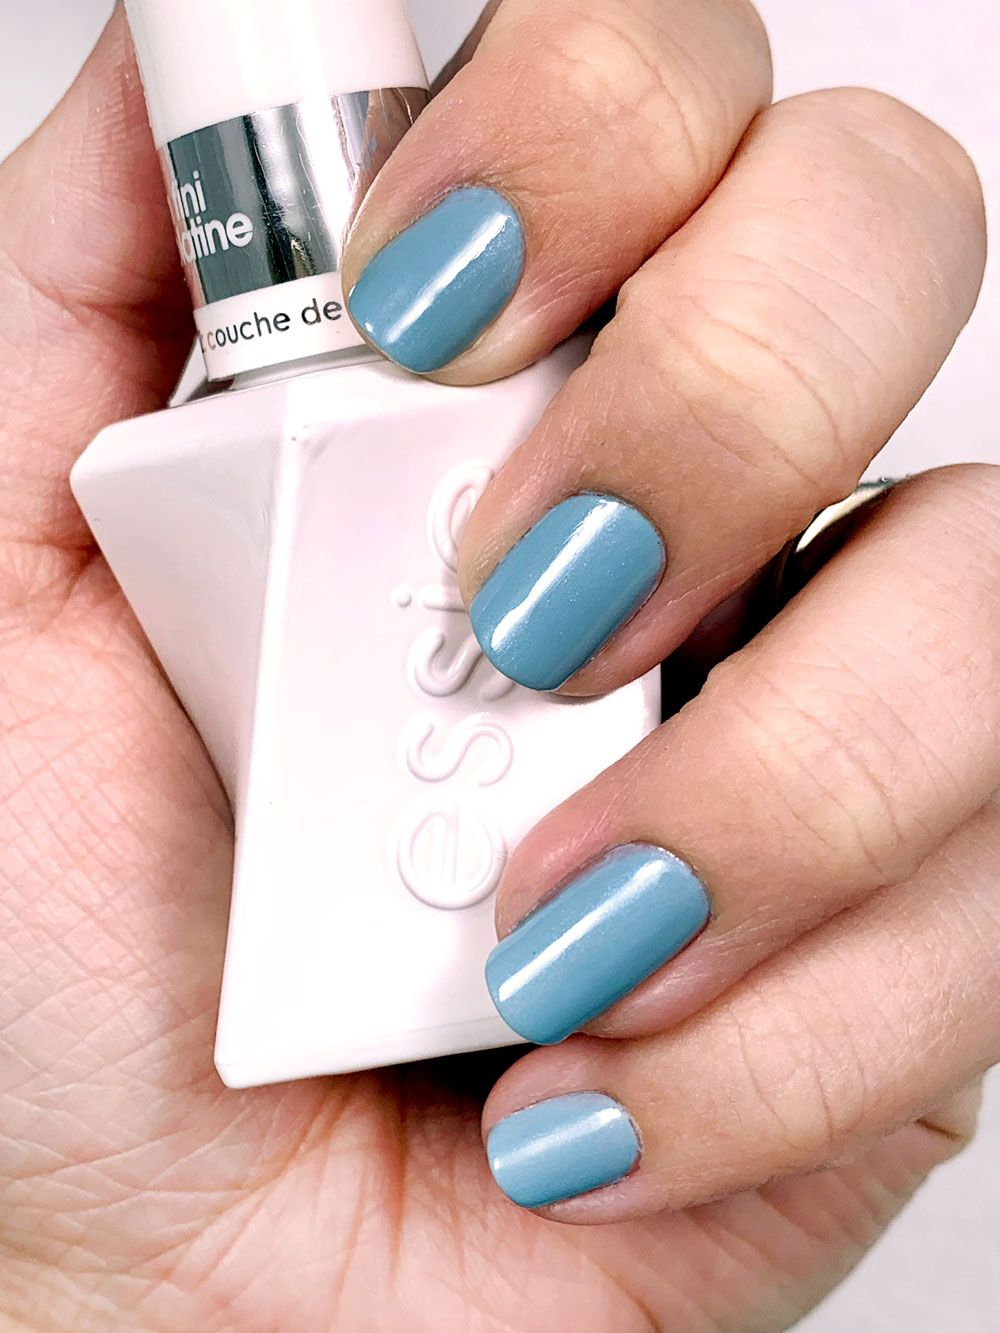 The Best At Home No Lamp Gel Nail Polish Lexis Rose In 2020 Nail Polish Essie Gel Couture Essie Gel